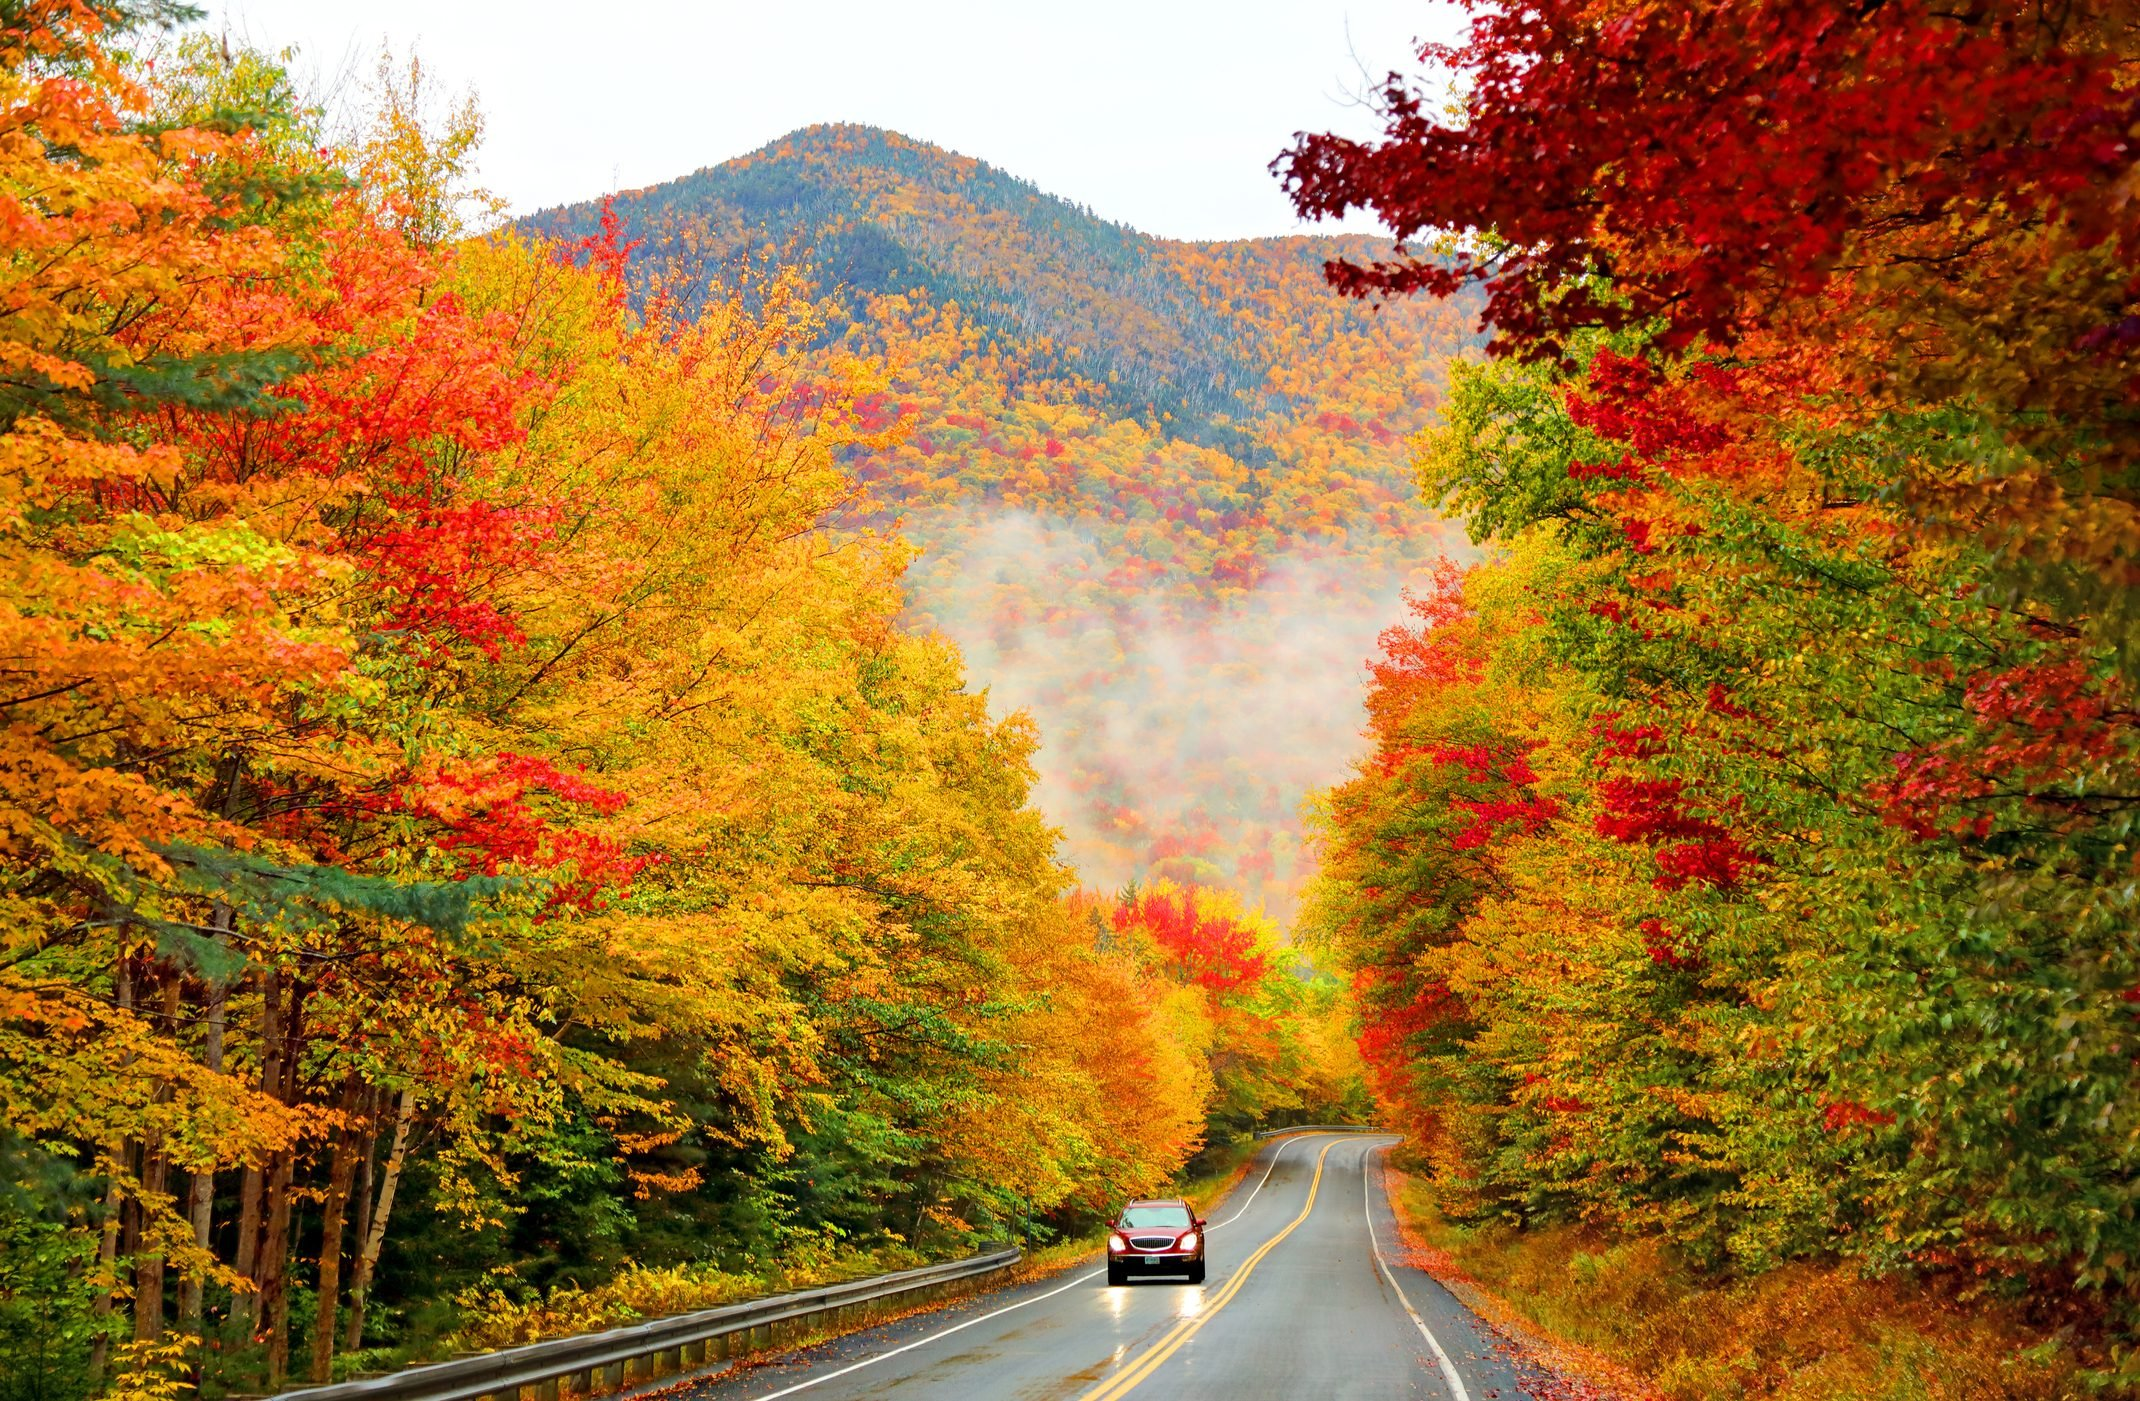 Kancamagus Highway in Northern New Hampshire